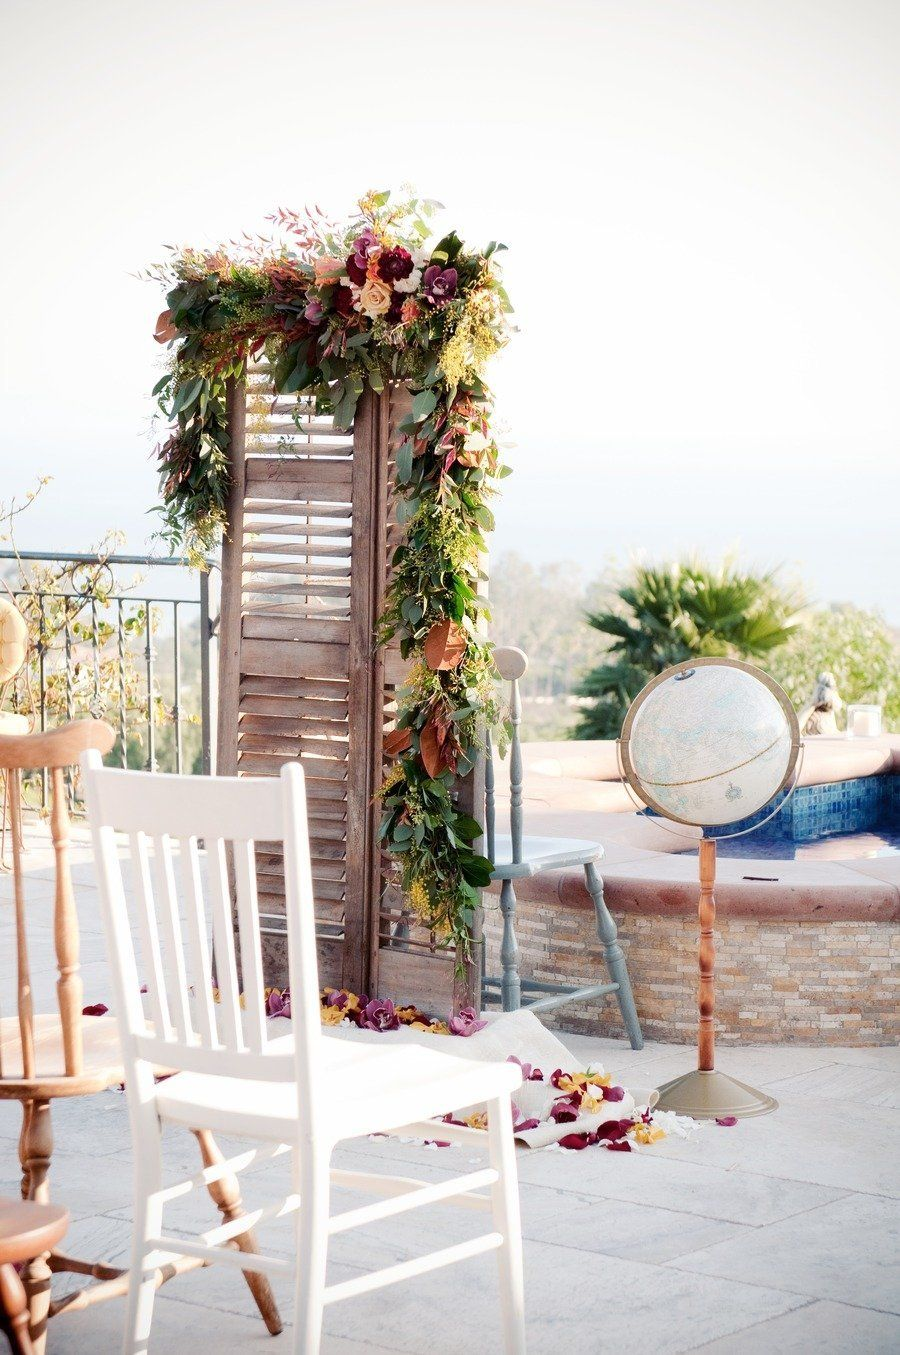 Spanish Inspired Wedding Photo Shoot at Villa Mara Malibu by Orange Blossom Special Events + Krista Mason Photography Seating Antique French Doors Globe Turning Pool Poolside Florals Archive Rentals  Read more - http://www.stylemepretty.com/california-weddings/2012/04/18/spanish-inspired-wedding-photo-shoot-at-villa-mara-malibu-by-orange-blossom-special-events-krista-mason-photography/